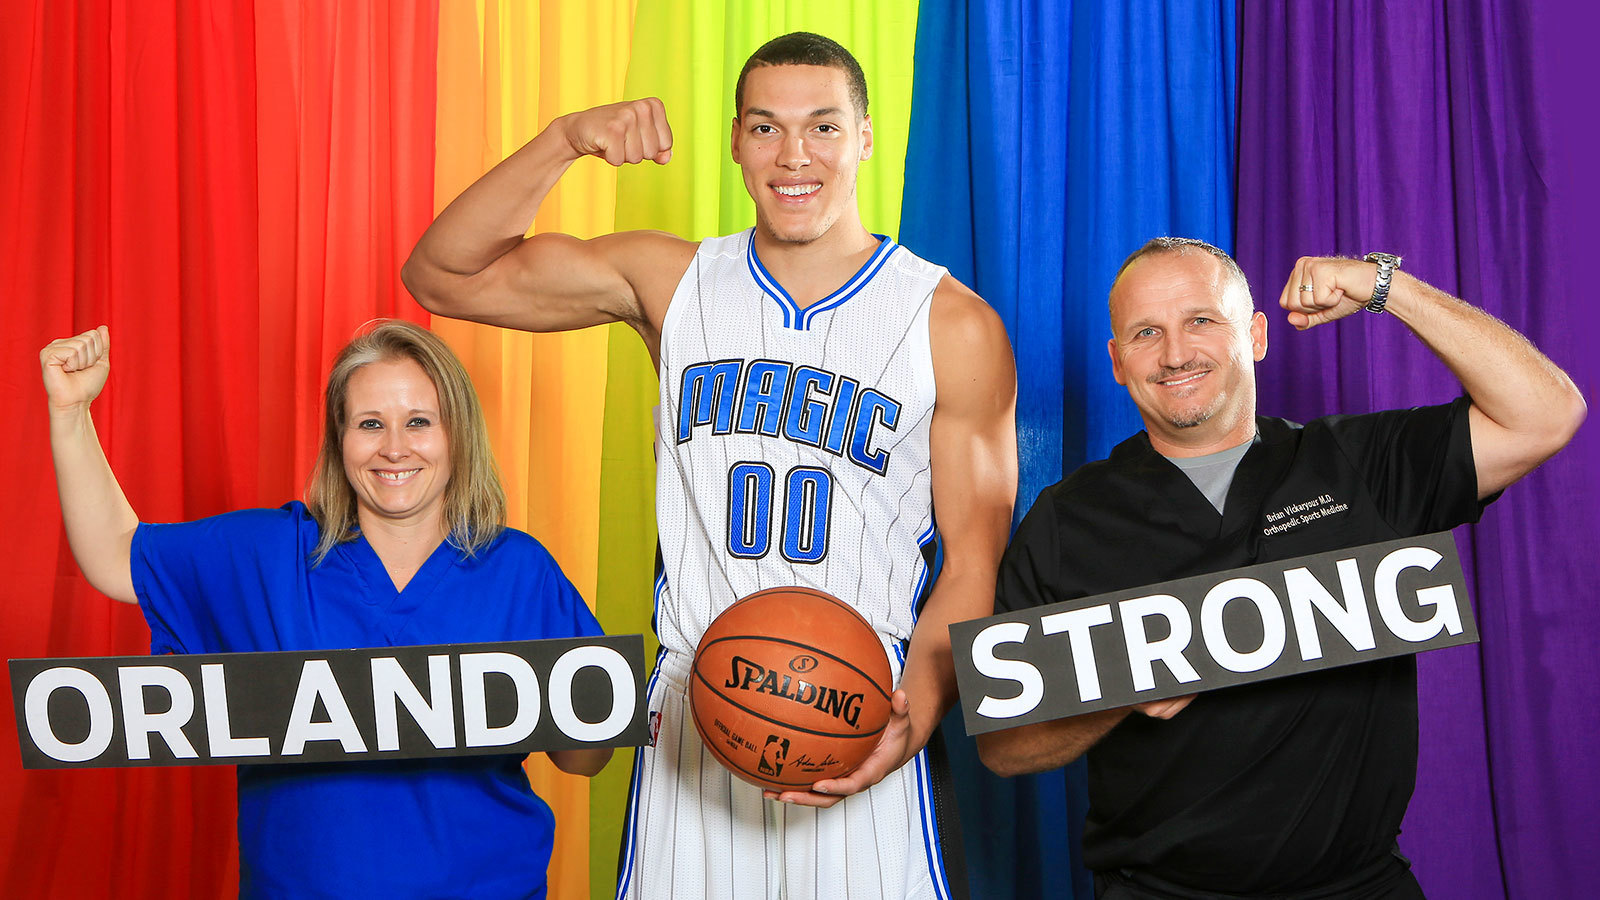 Orlando Magic forward Aaron Gordon with nurse Jessica Mills and Dr. Brian Vickaryous of Florida Hospital Orlando